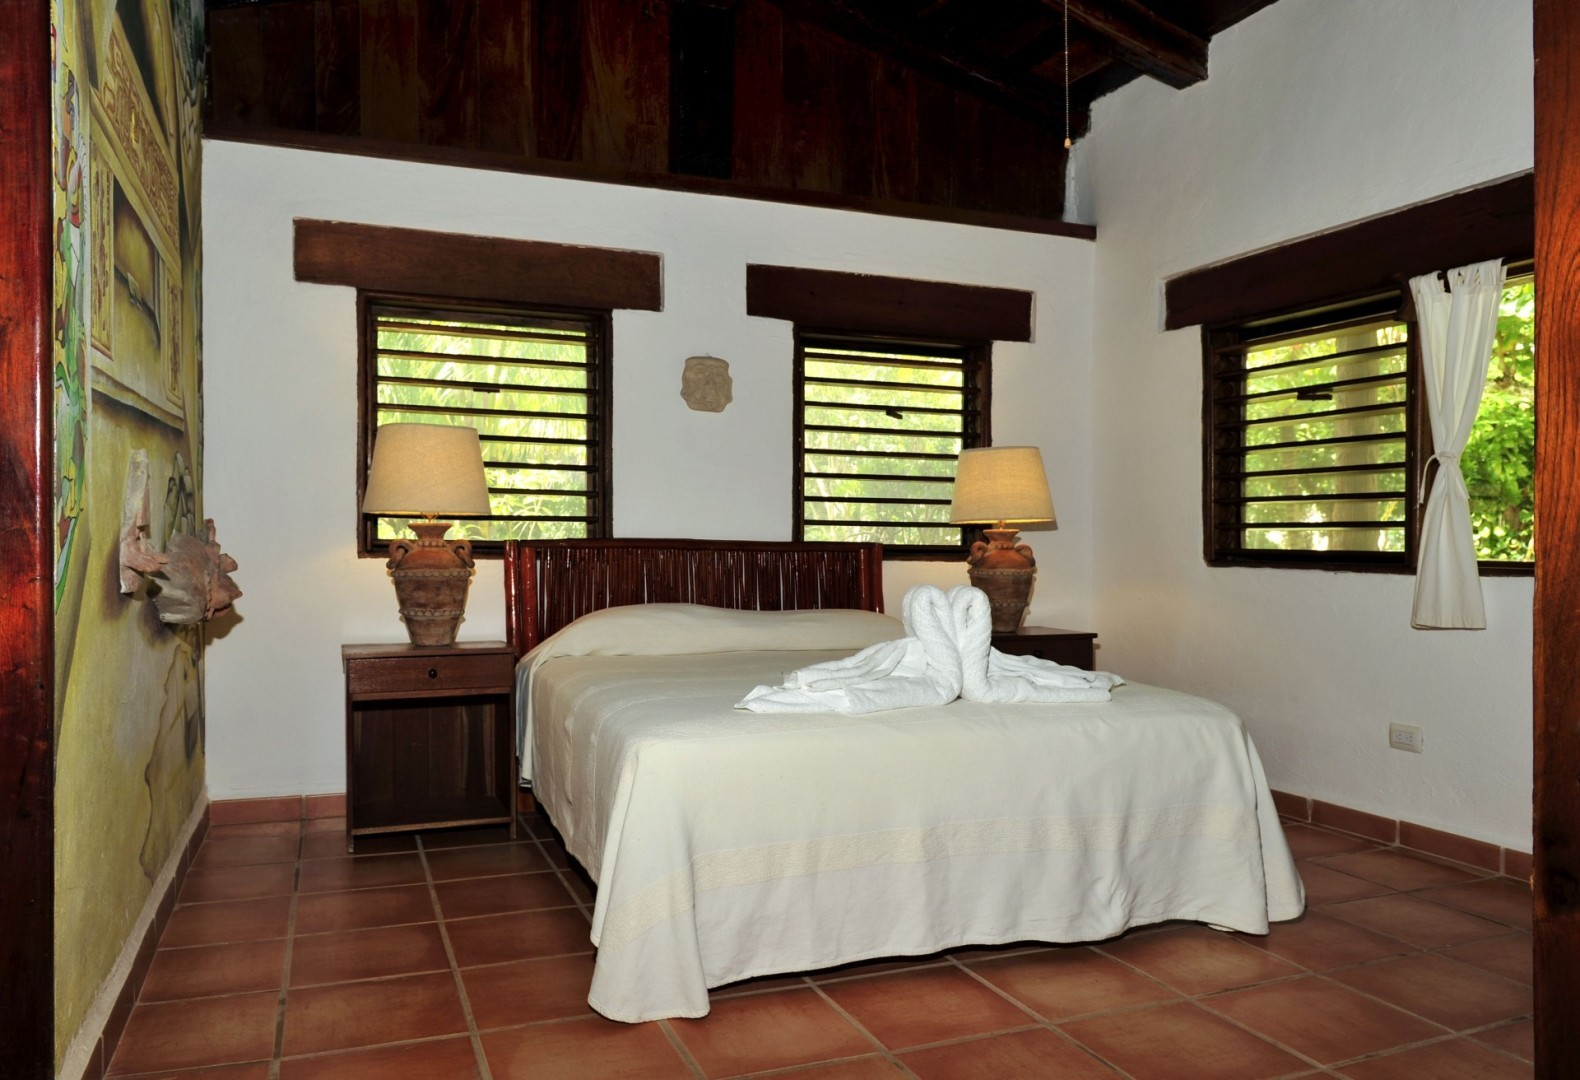 Small double room at Rancho Encantado Bacalar